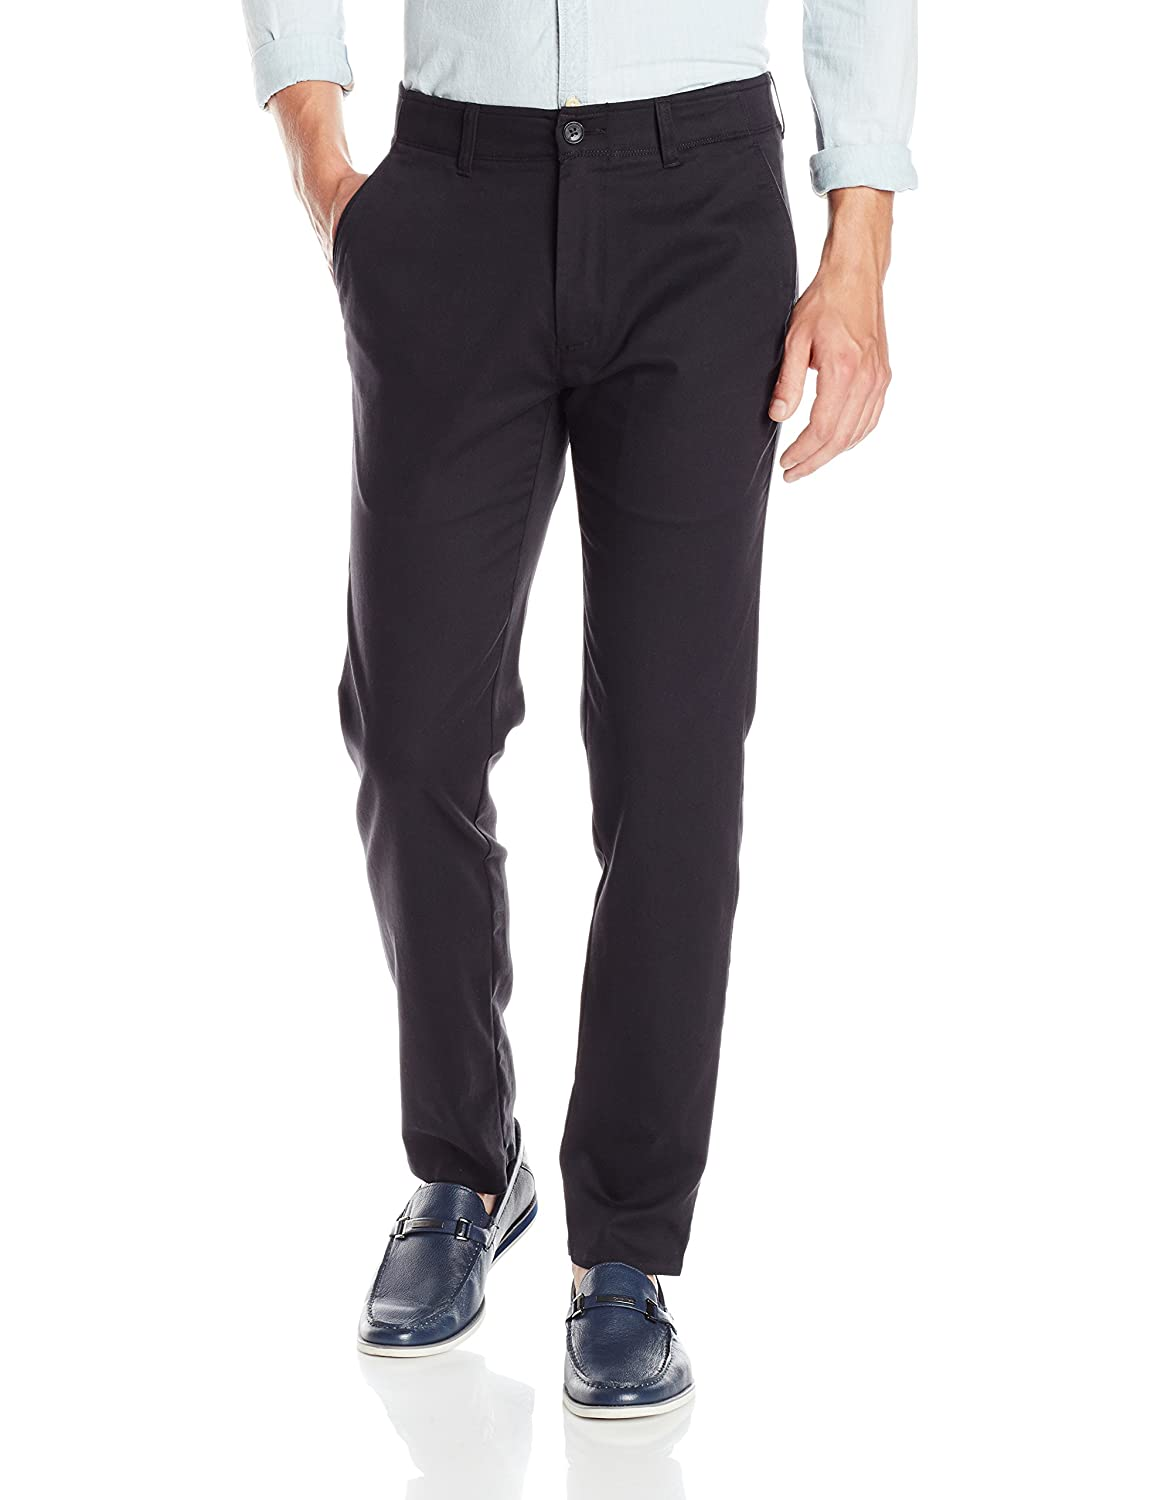 Haggar Mens In Motion Rambler Slim Fit Flat Front Athleisure Casual Pant